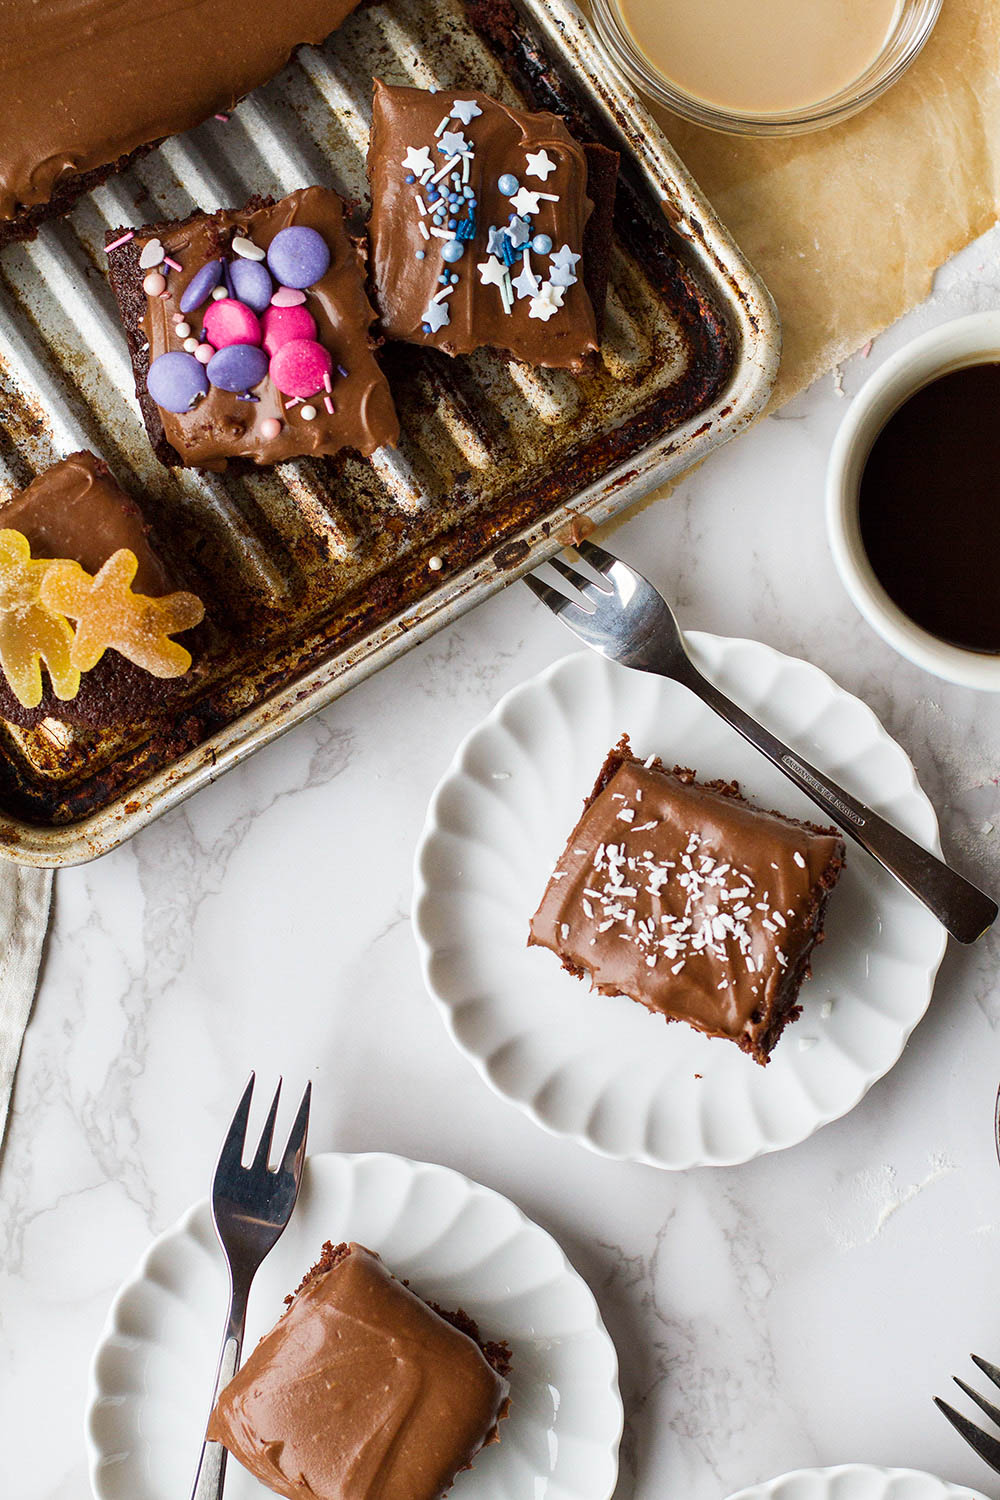 Several square chocolate cake slices with different toppings.